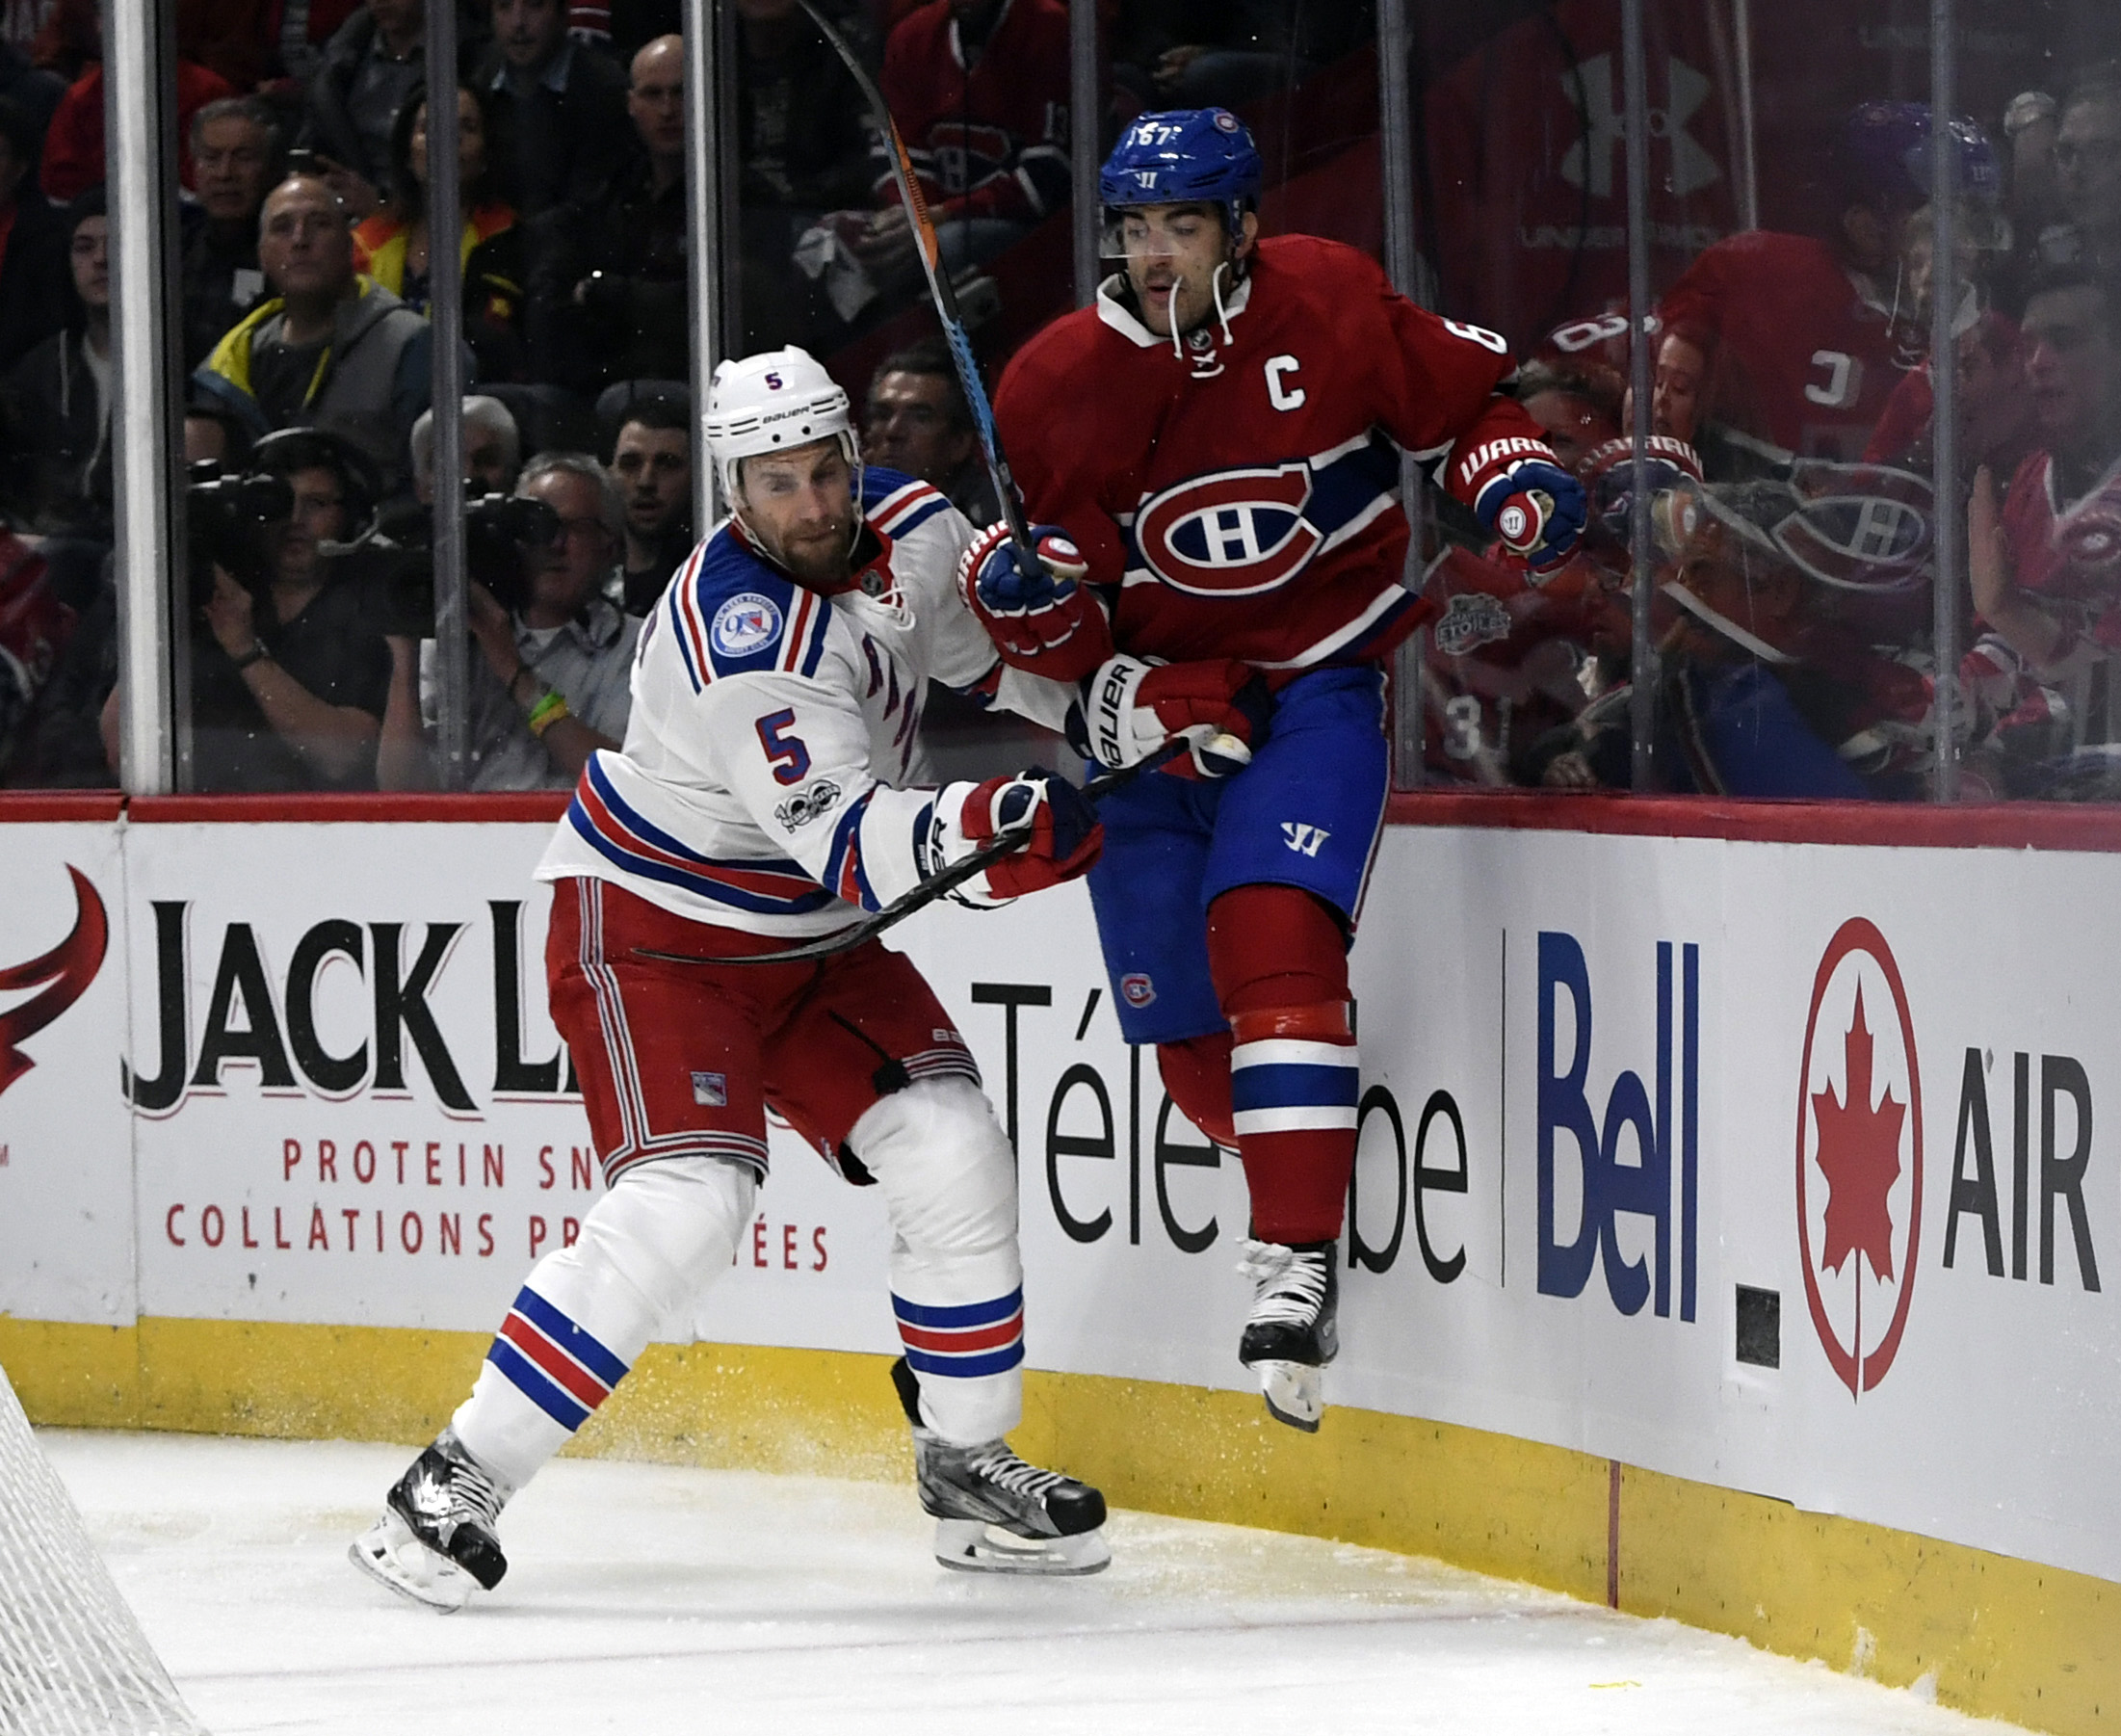 10008779-nhl-stanley-cup-playoffs-new-york-rangers-at-montreal-canadiens